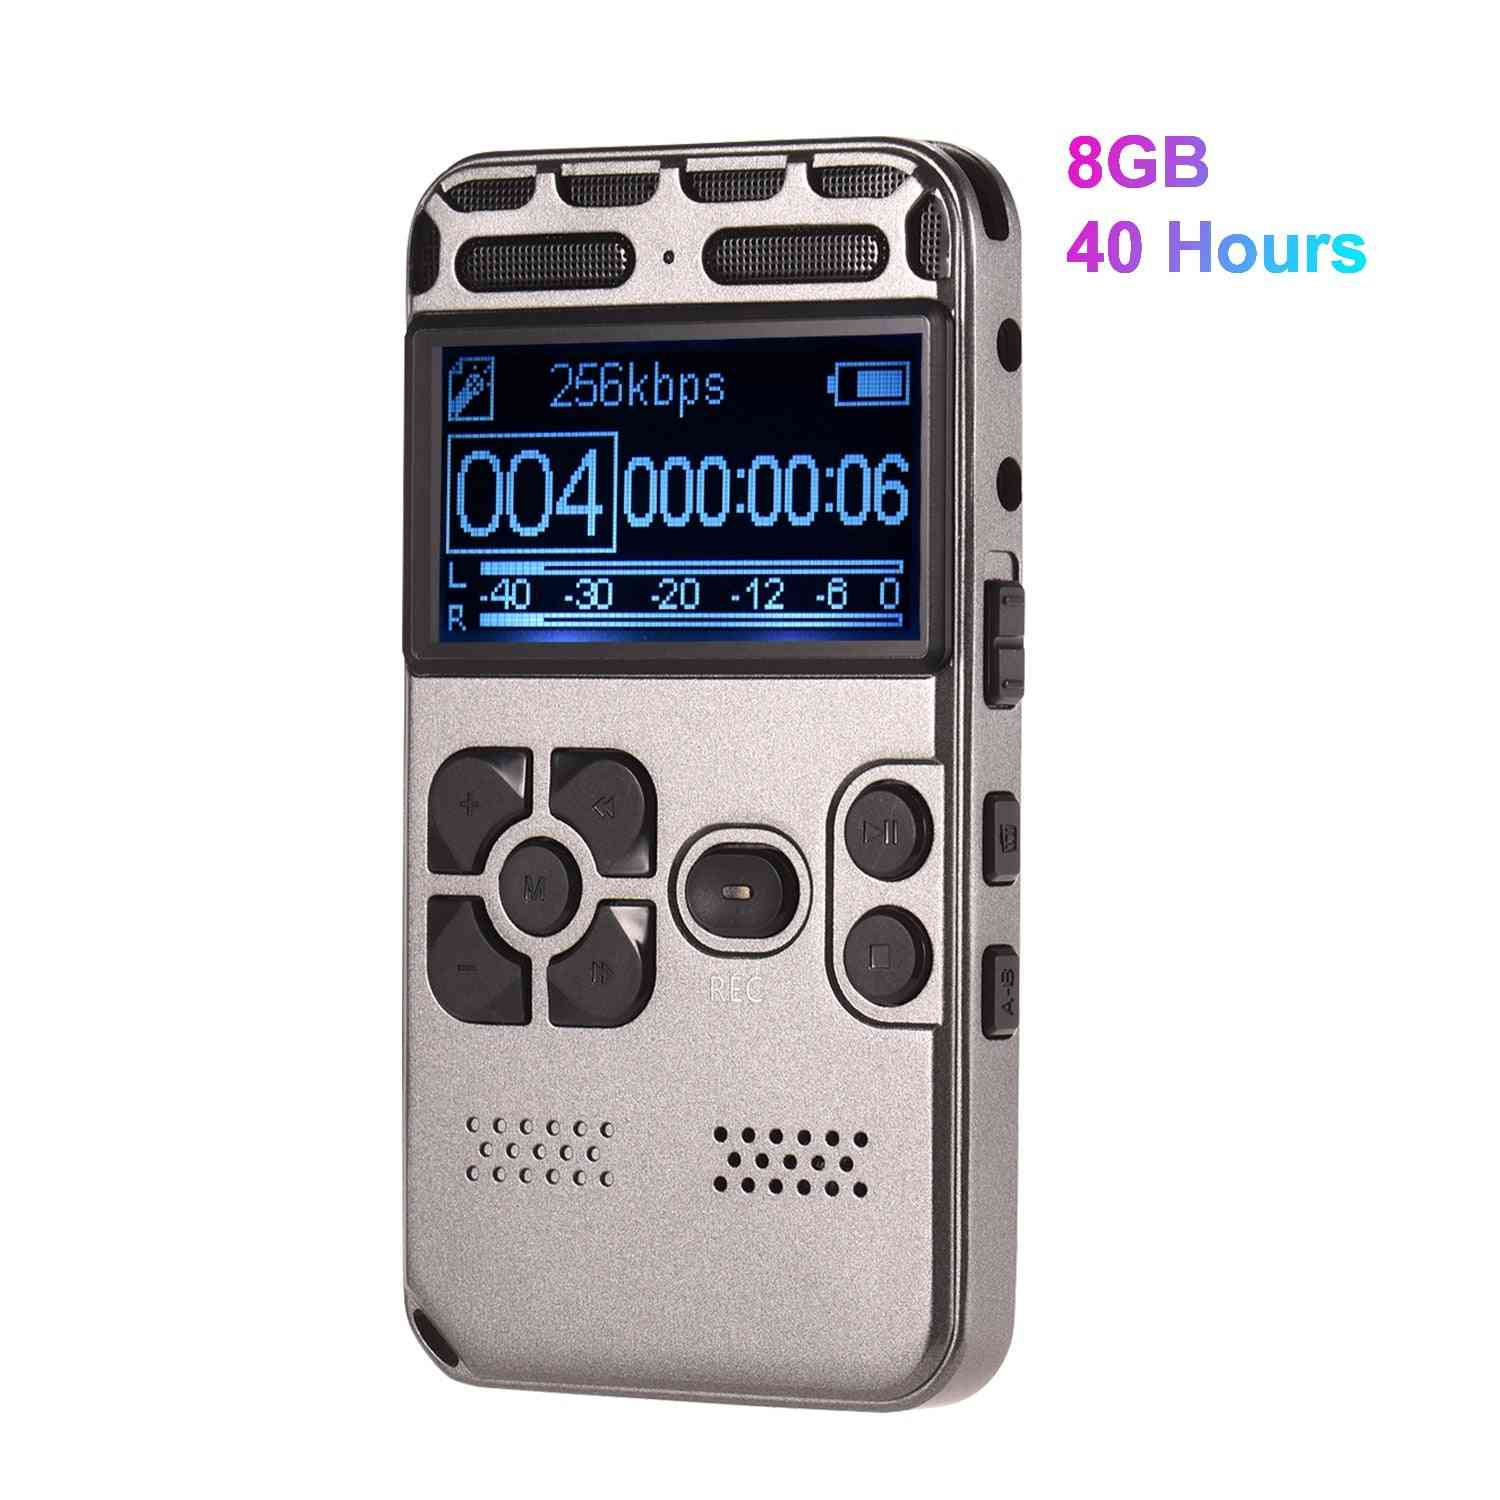 Professional High Definition Digital Sound Voice Recorder, Mp3 Player